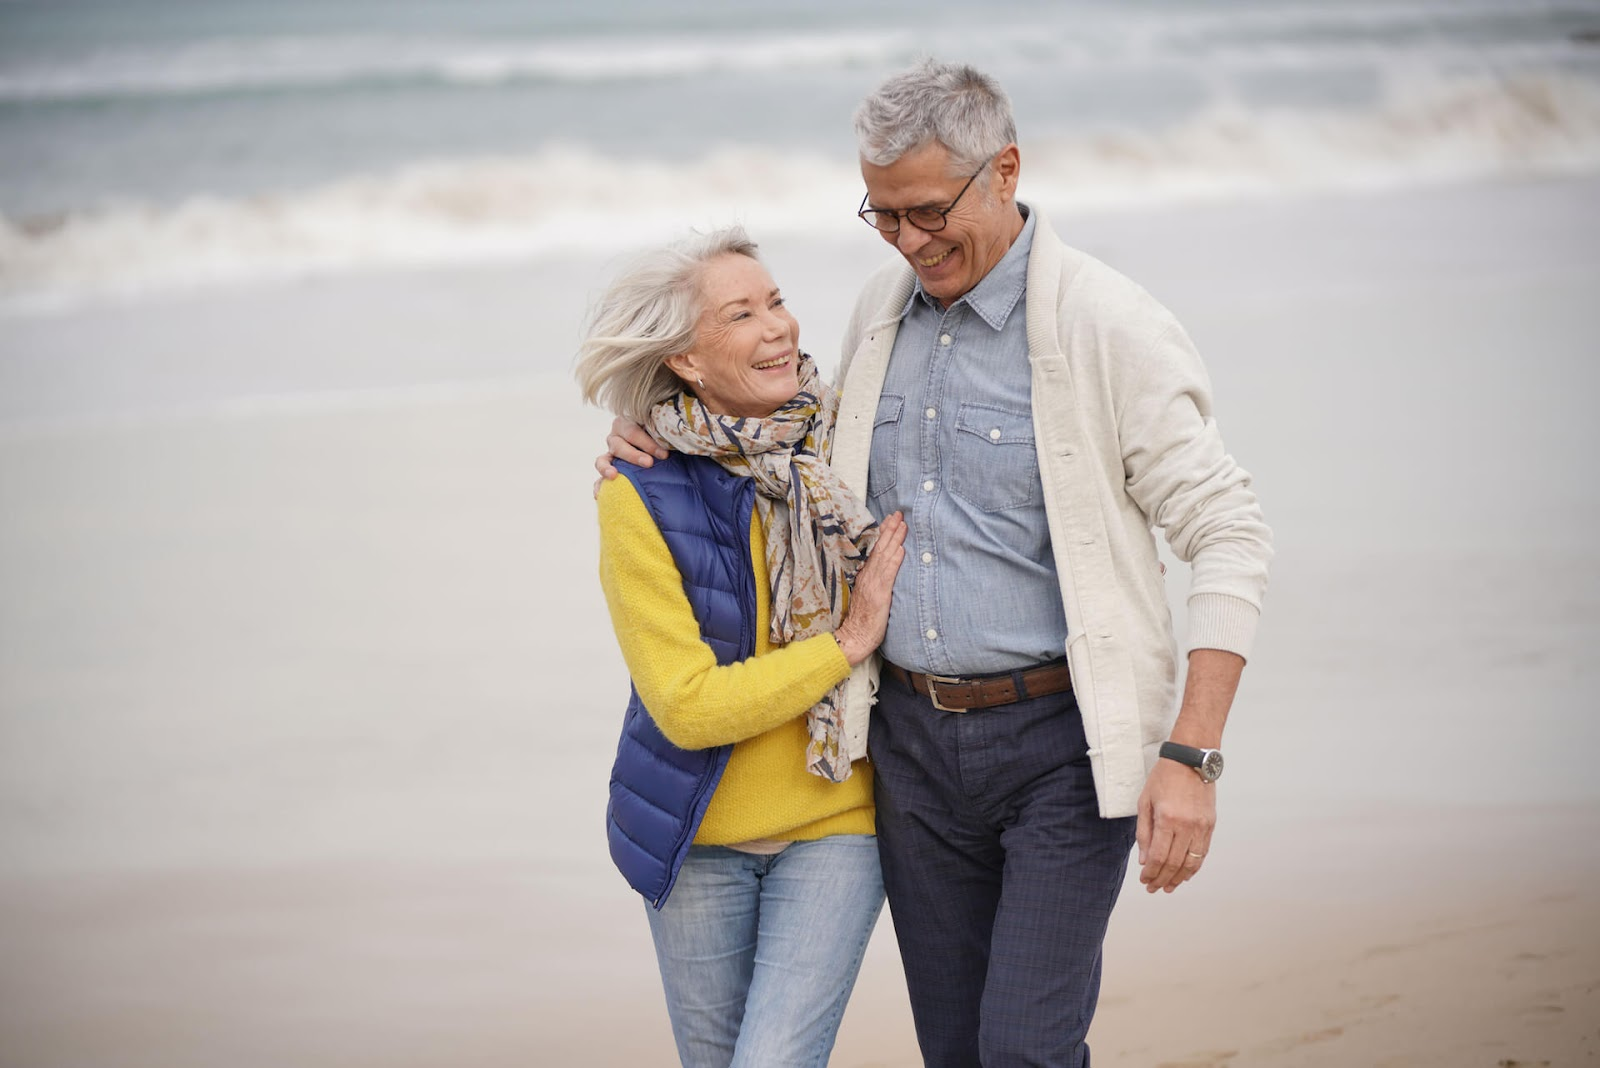 Man and wife walking down the beach together